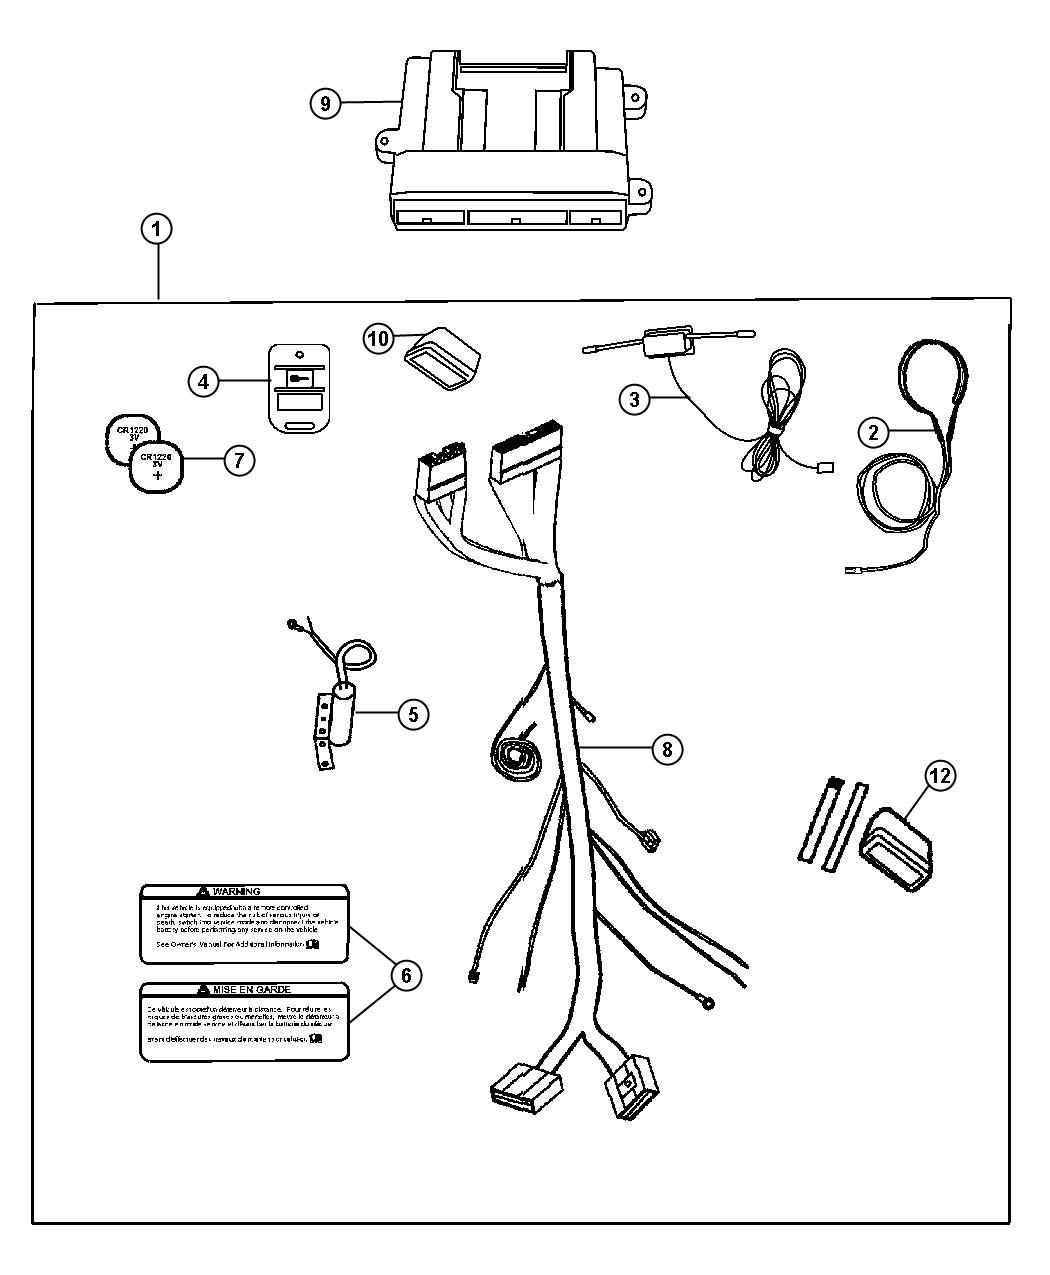 Chrysler Pacifica Installation kit includes harness, long